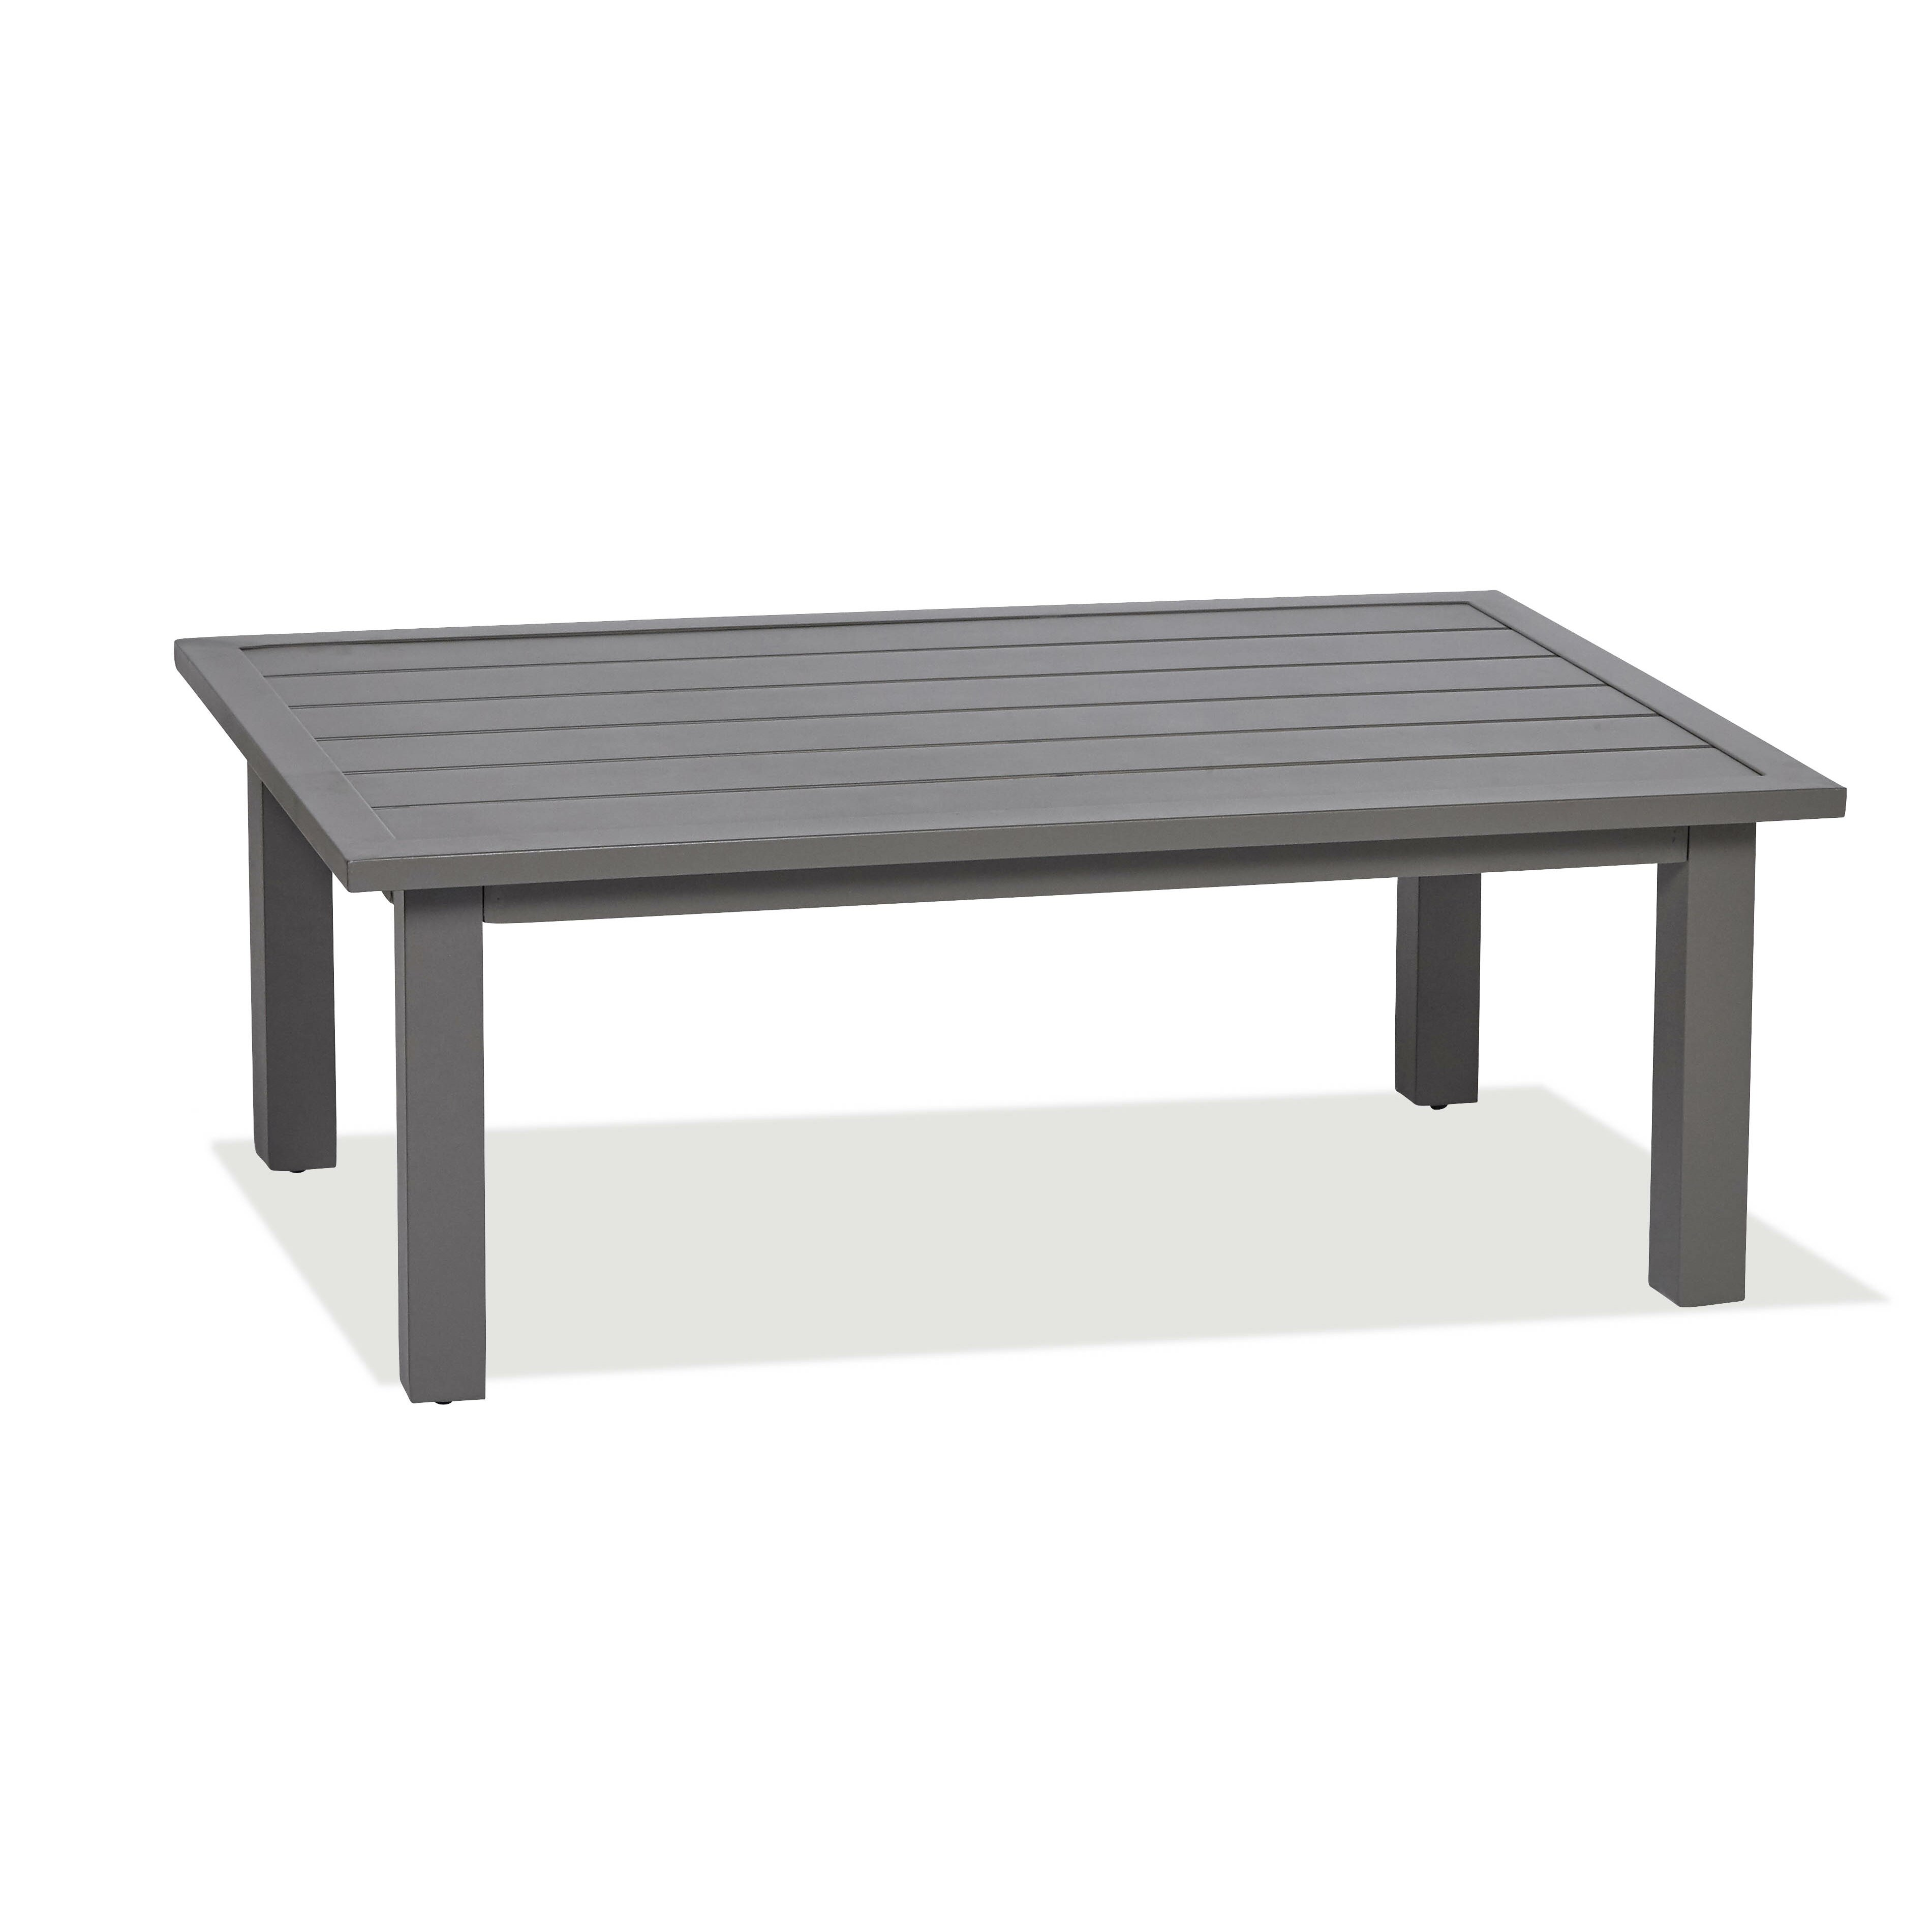 Ams outdoor chevron slats coffee table reviews wayfair for Wayfair outdoor coffee table